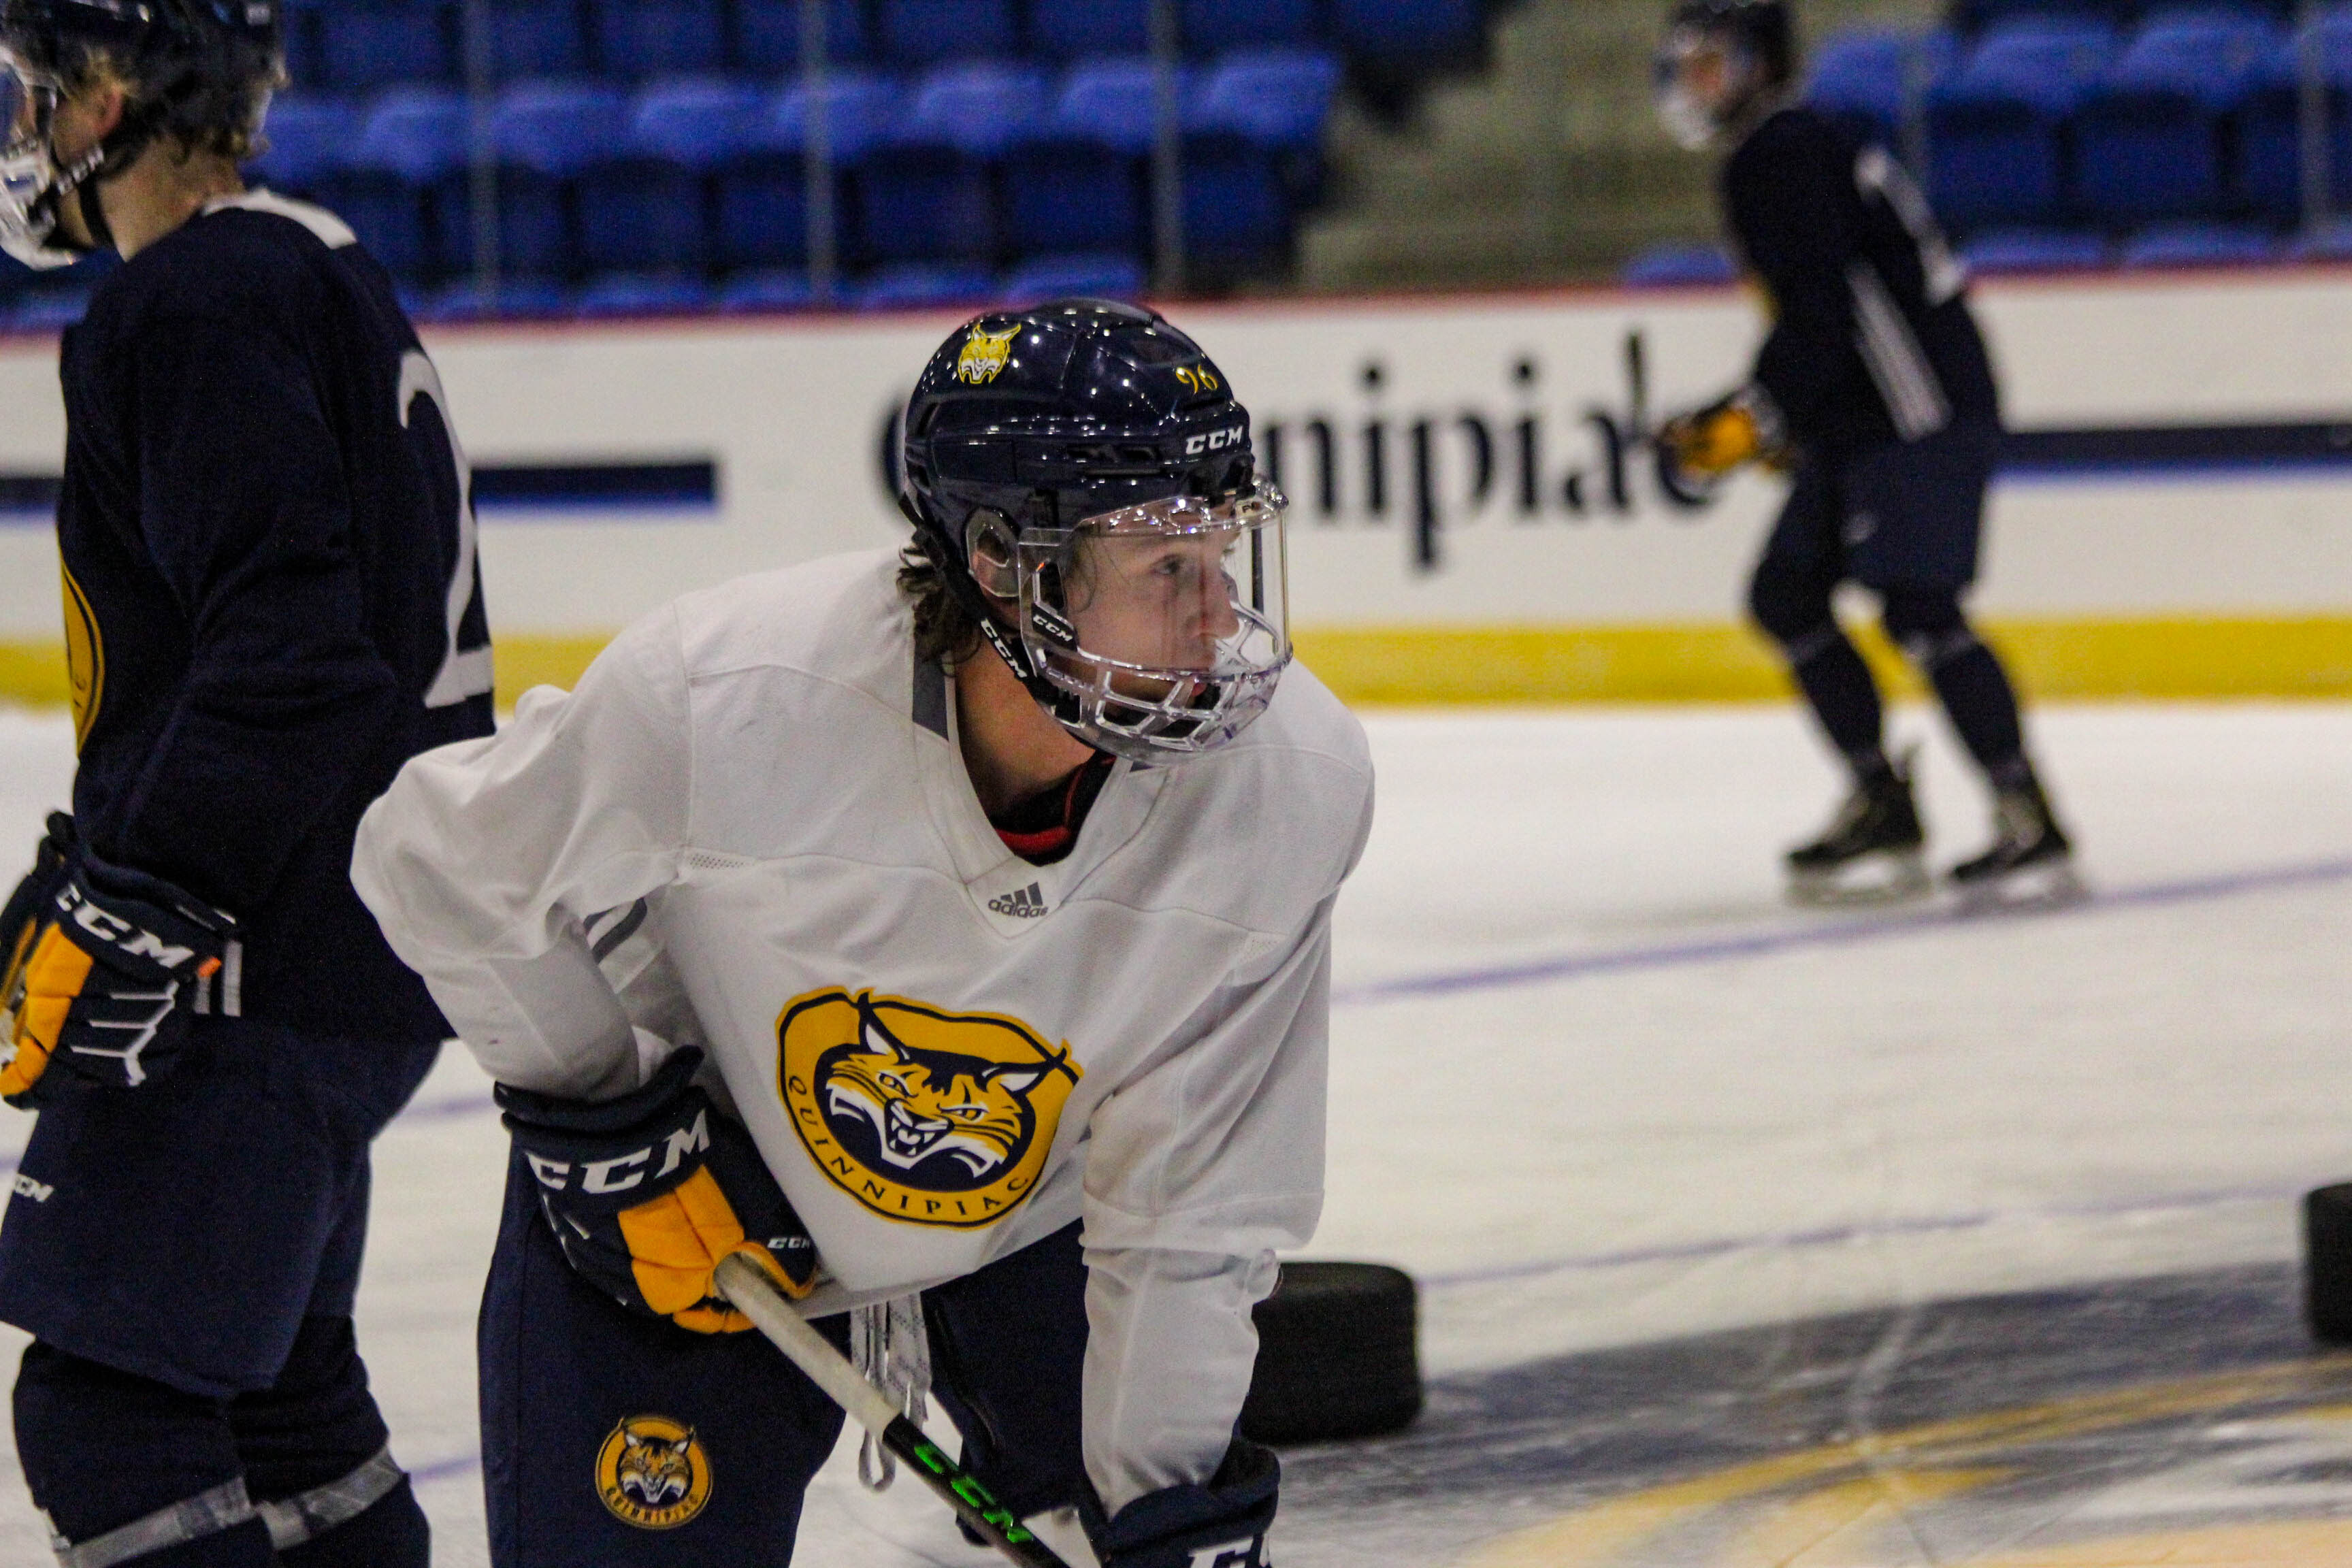 Colorado native Ty Smilanic leans on his stick at practice for Quinnipiac University. Photo courtesy of Quinnipiac University Athletics